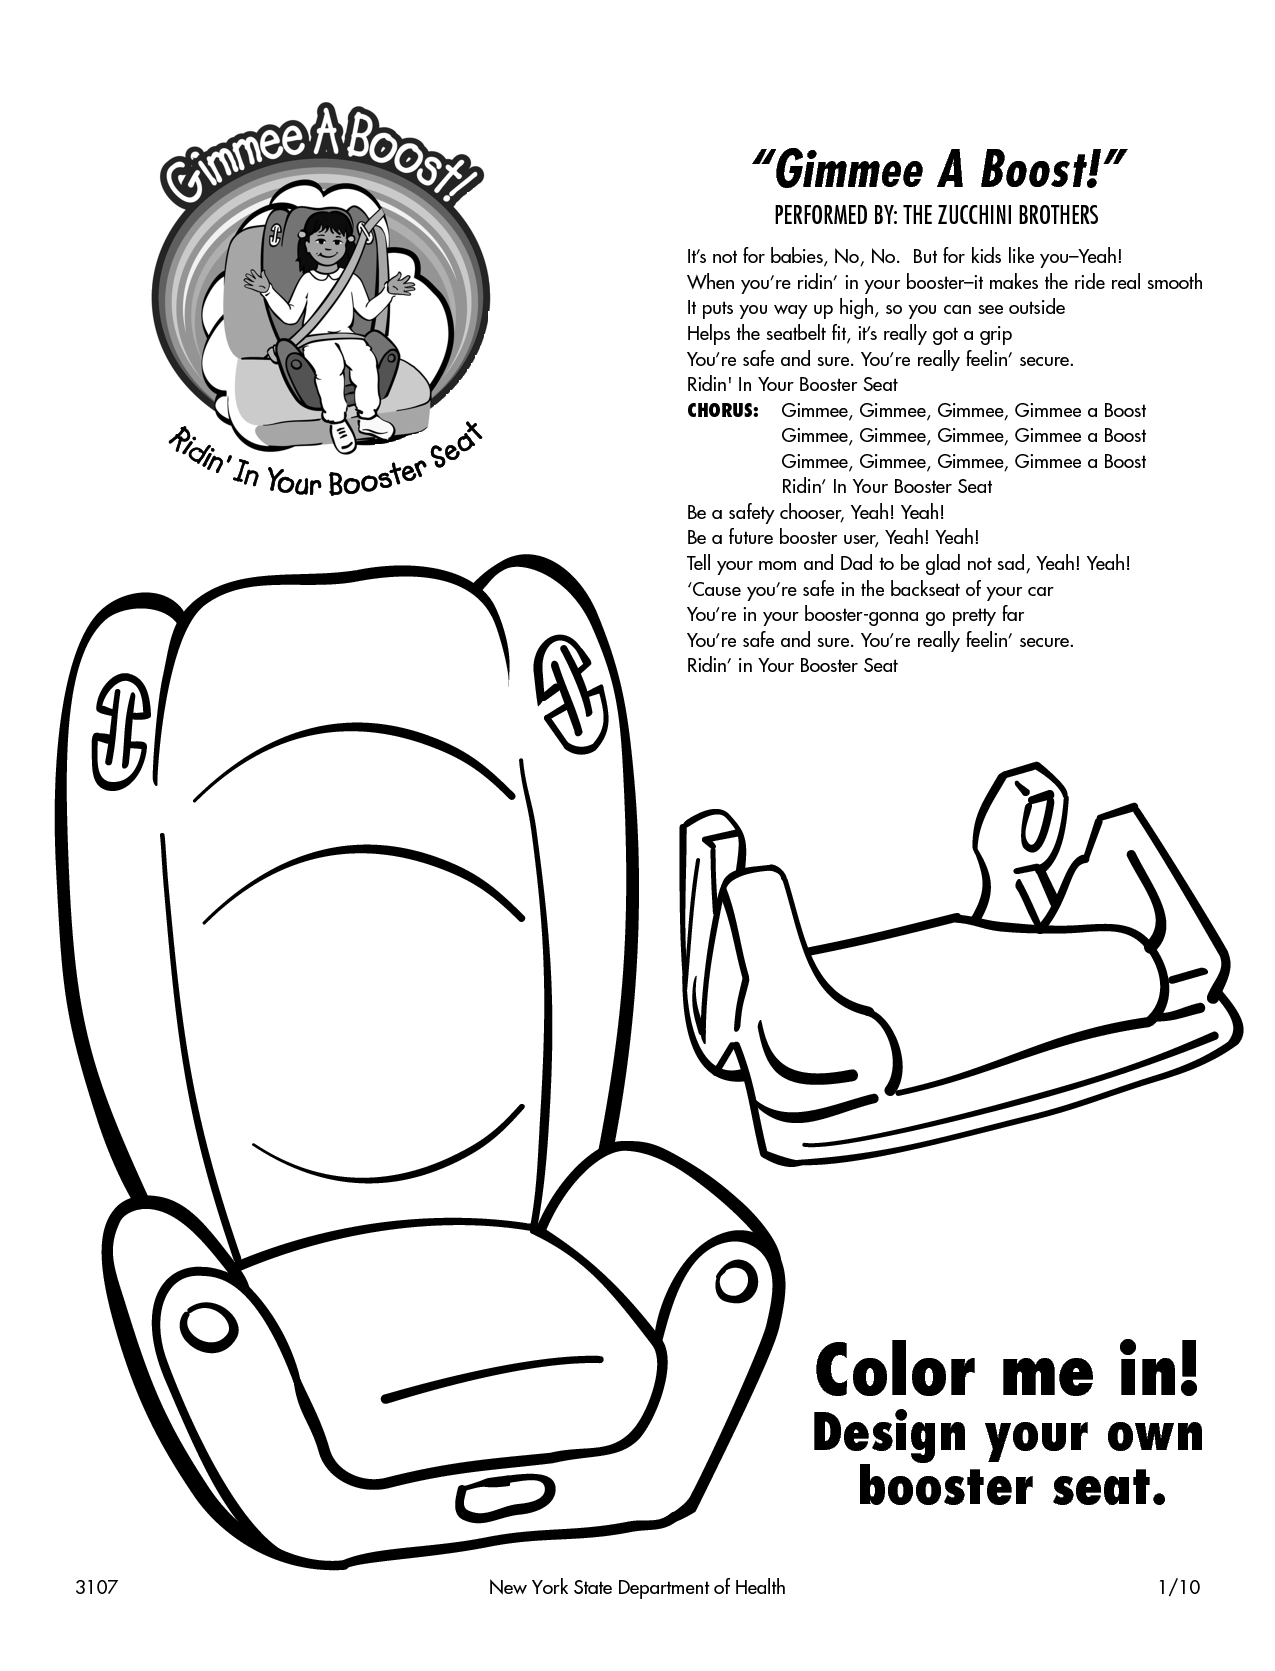 Cheap Carseat Saftey Coloring Pages Gimme A Boost Booster Seat Sheet With Ctr Page